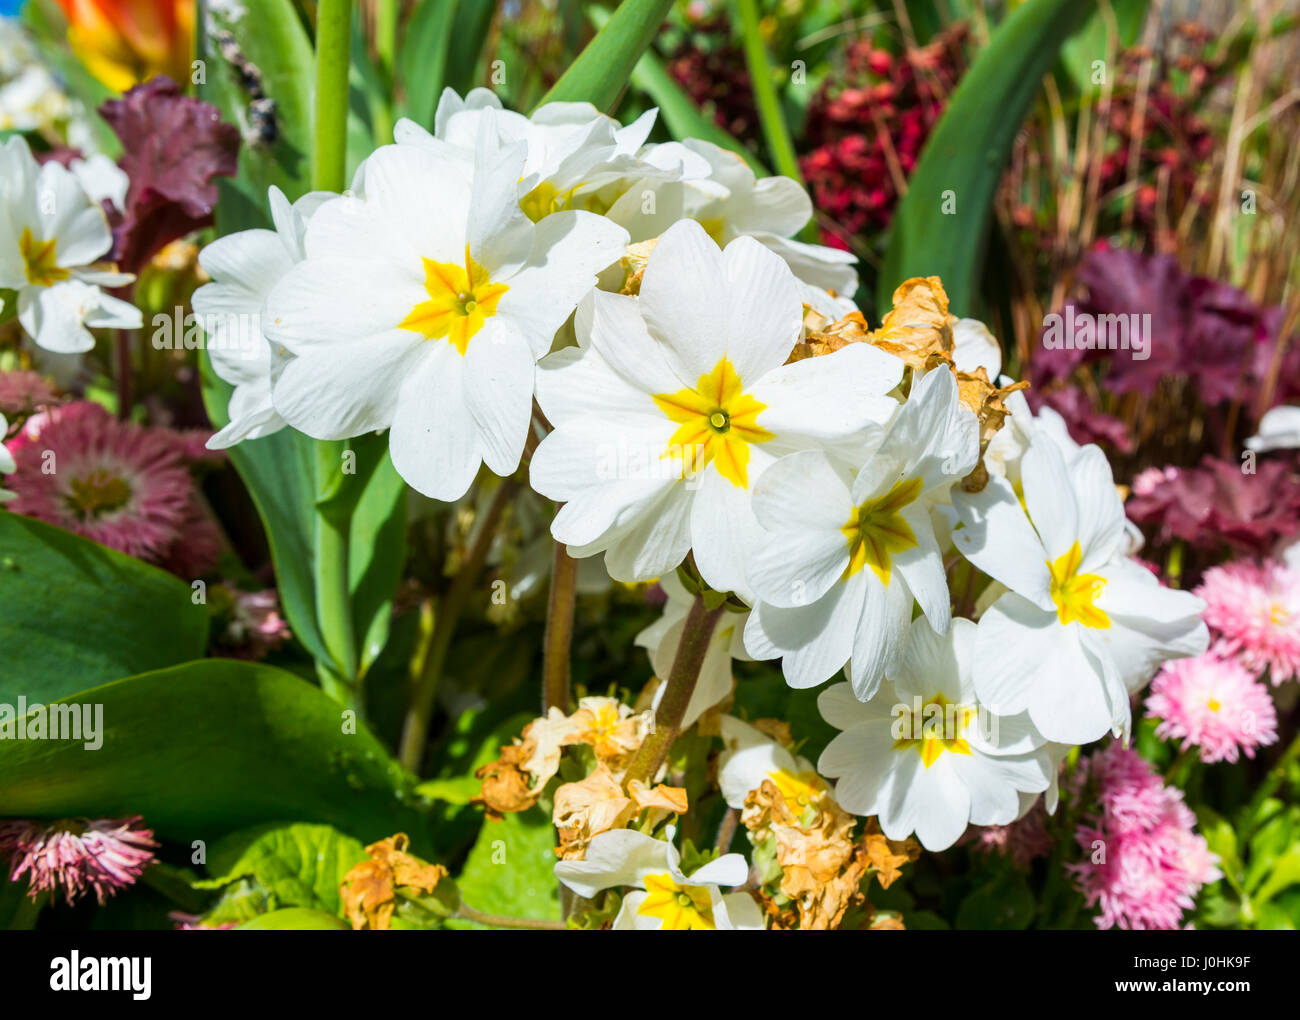 Flowers from a Pin-Eyed Primrose plants (Primula vulgaris) in a decorative flowerbed in a small town in Spring, Stock Photo